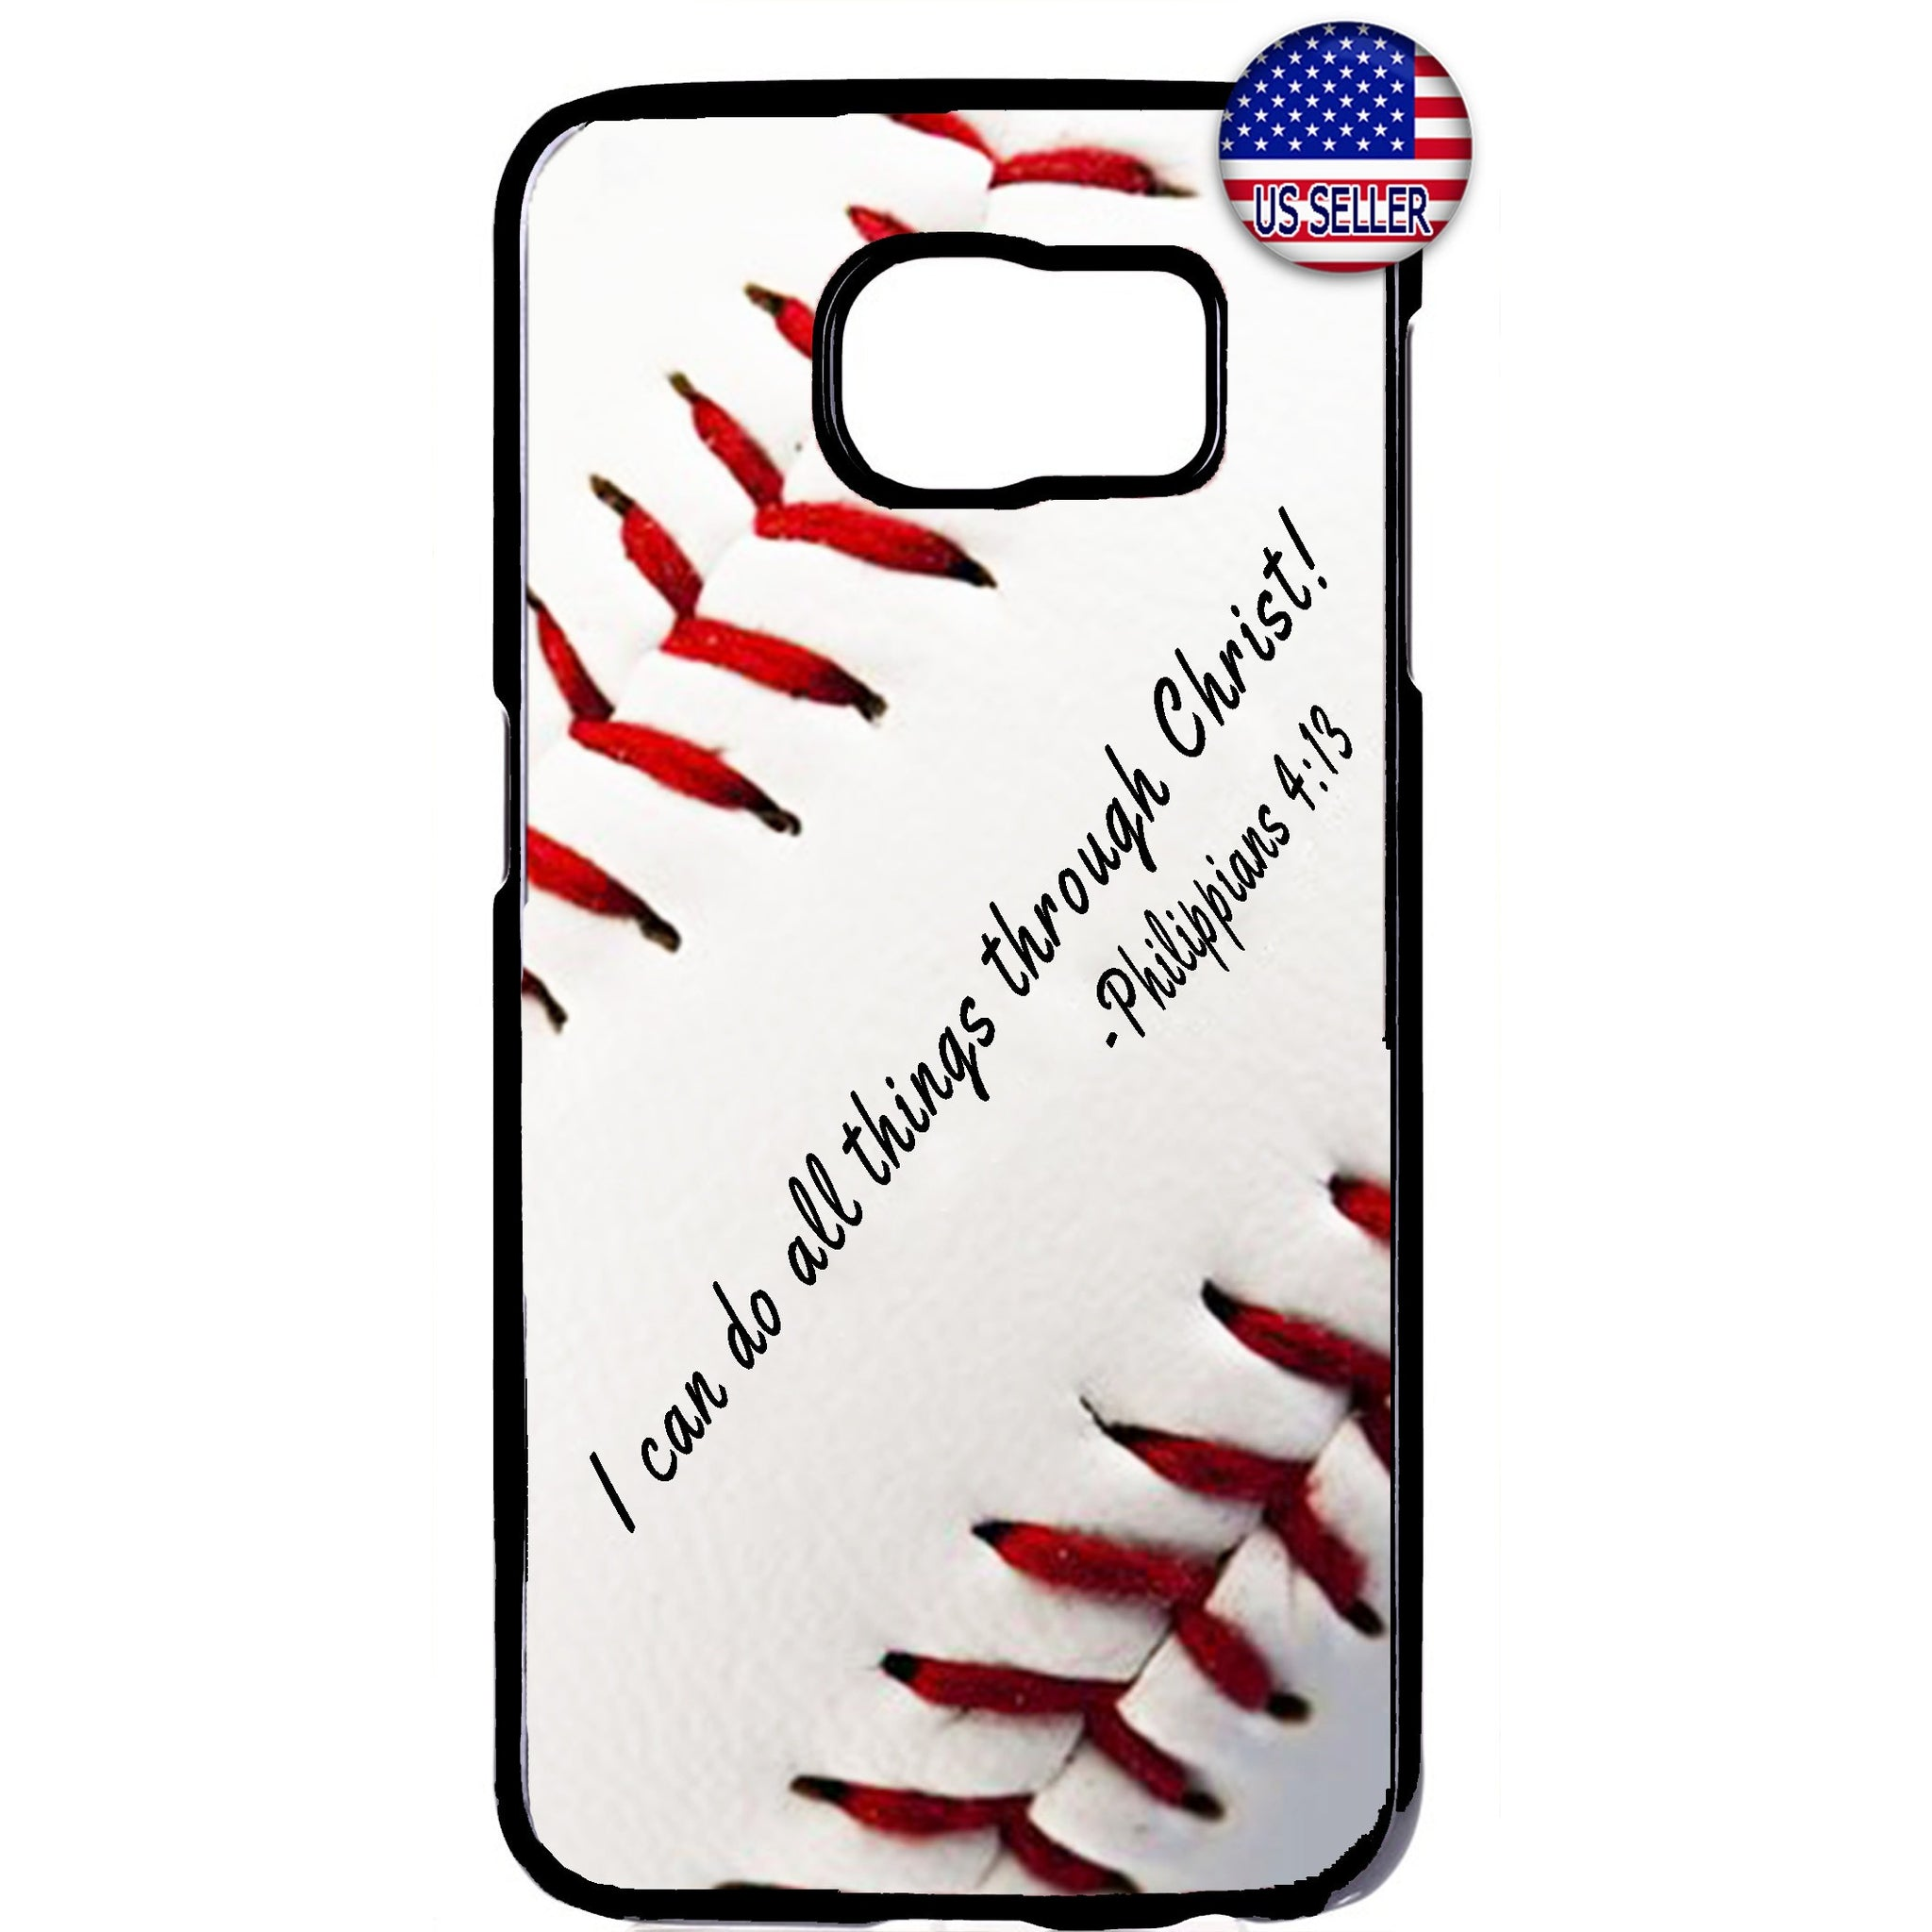 Baseball Christian Bible Verse Rubber Case Cover For Samsung Galaxy Note